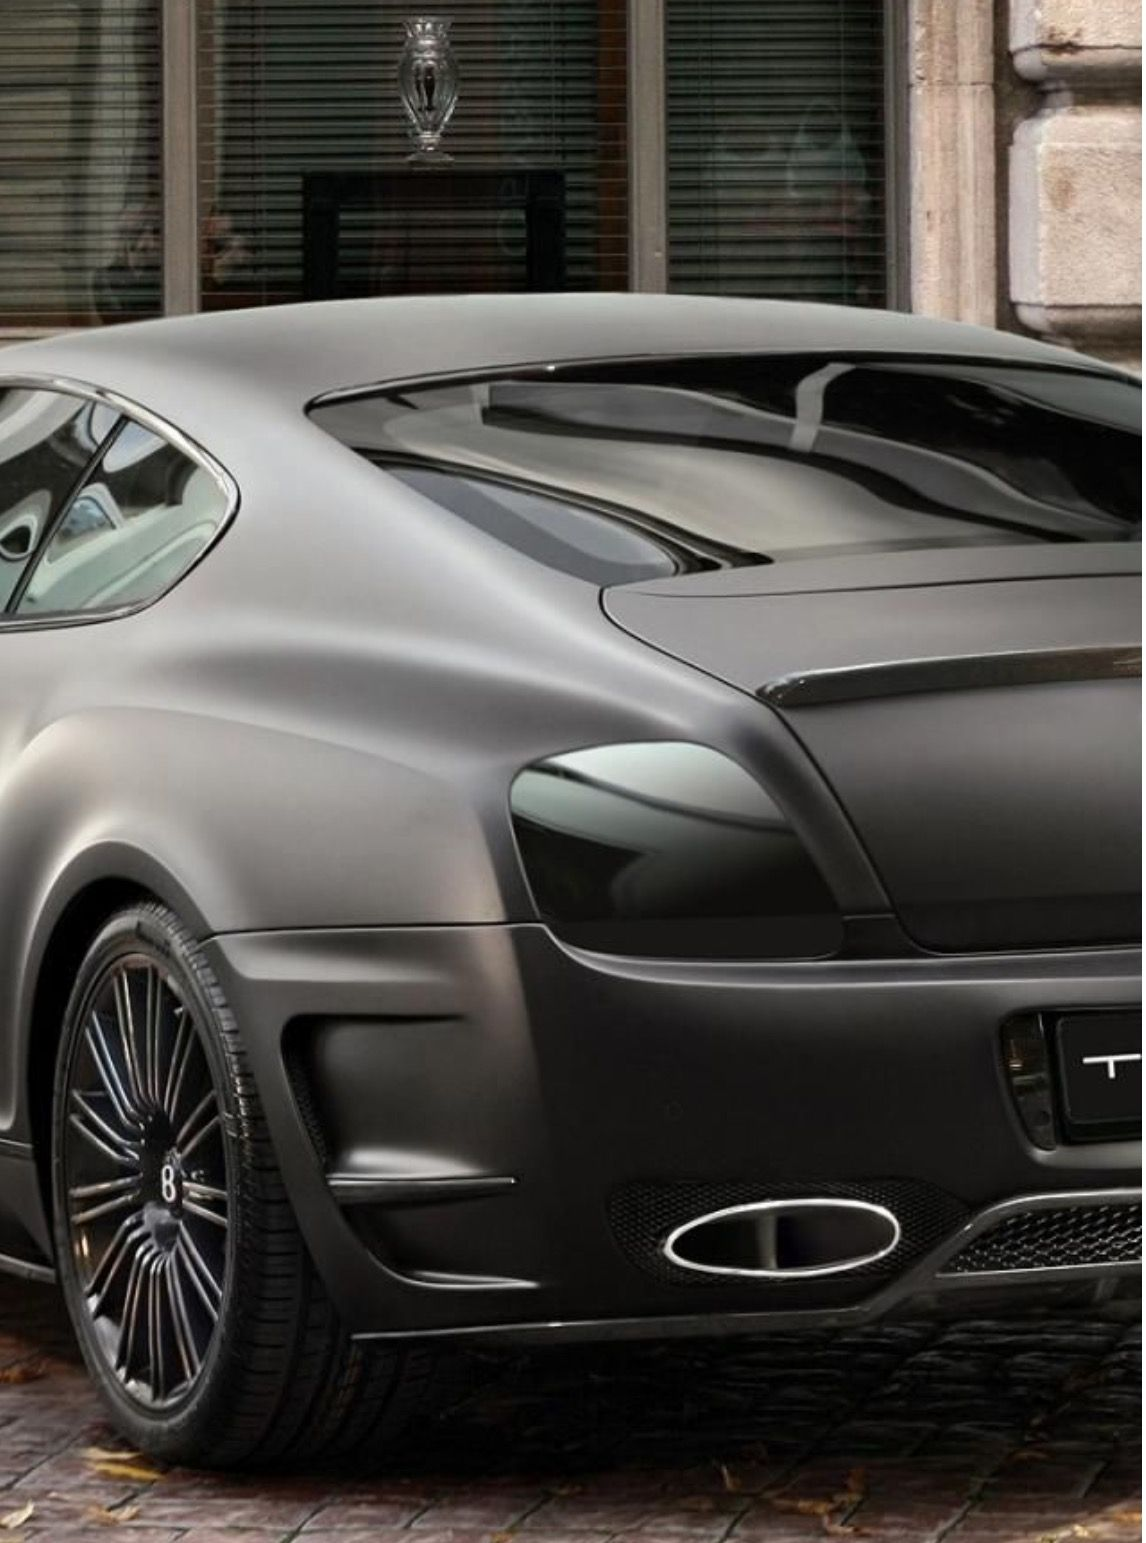 Pin on Grand Automotive BENTLEY CARS PICTURE